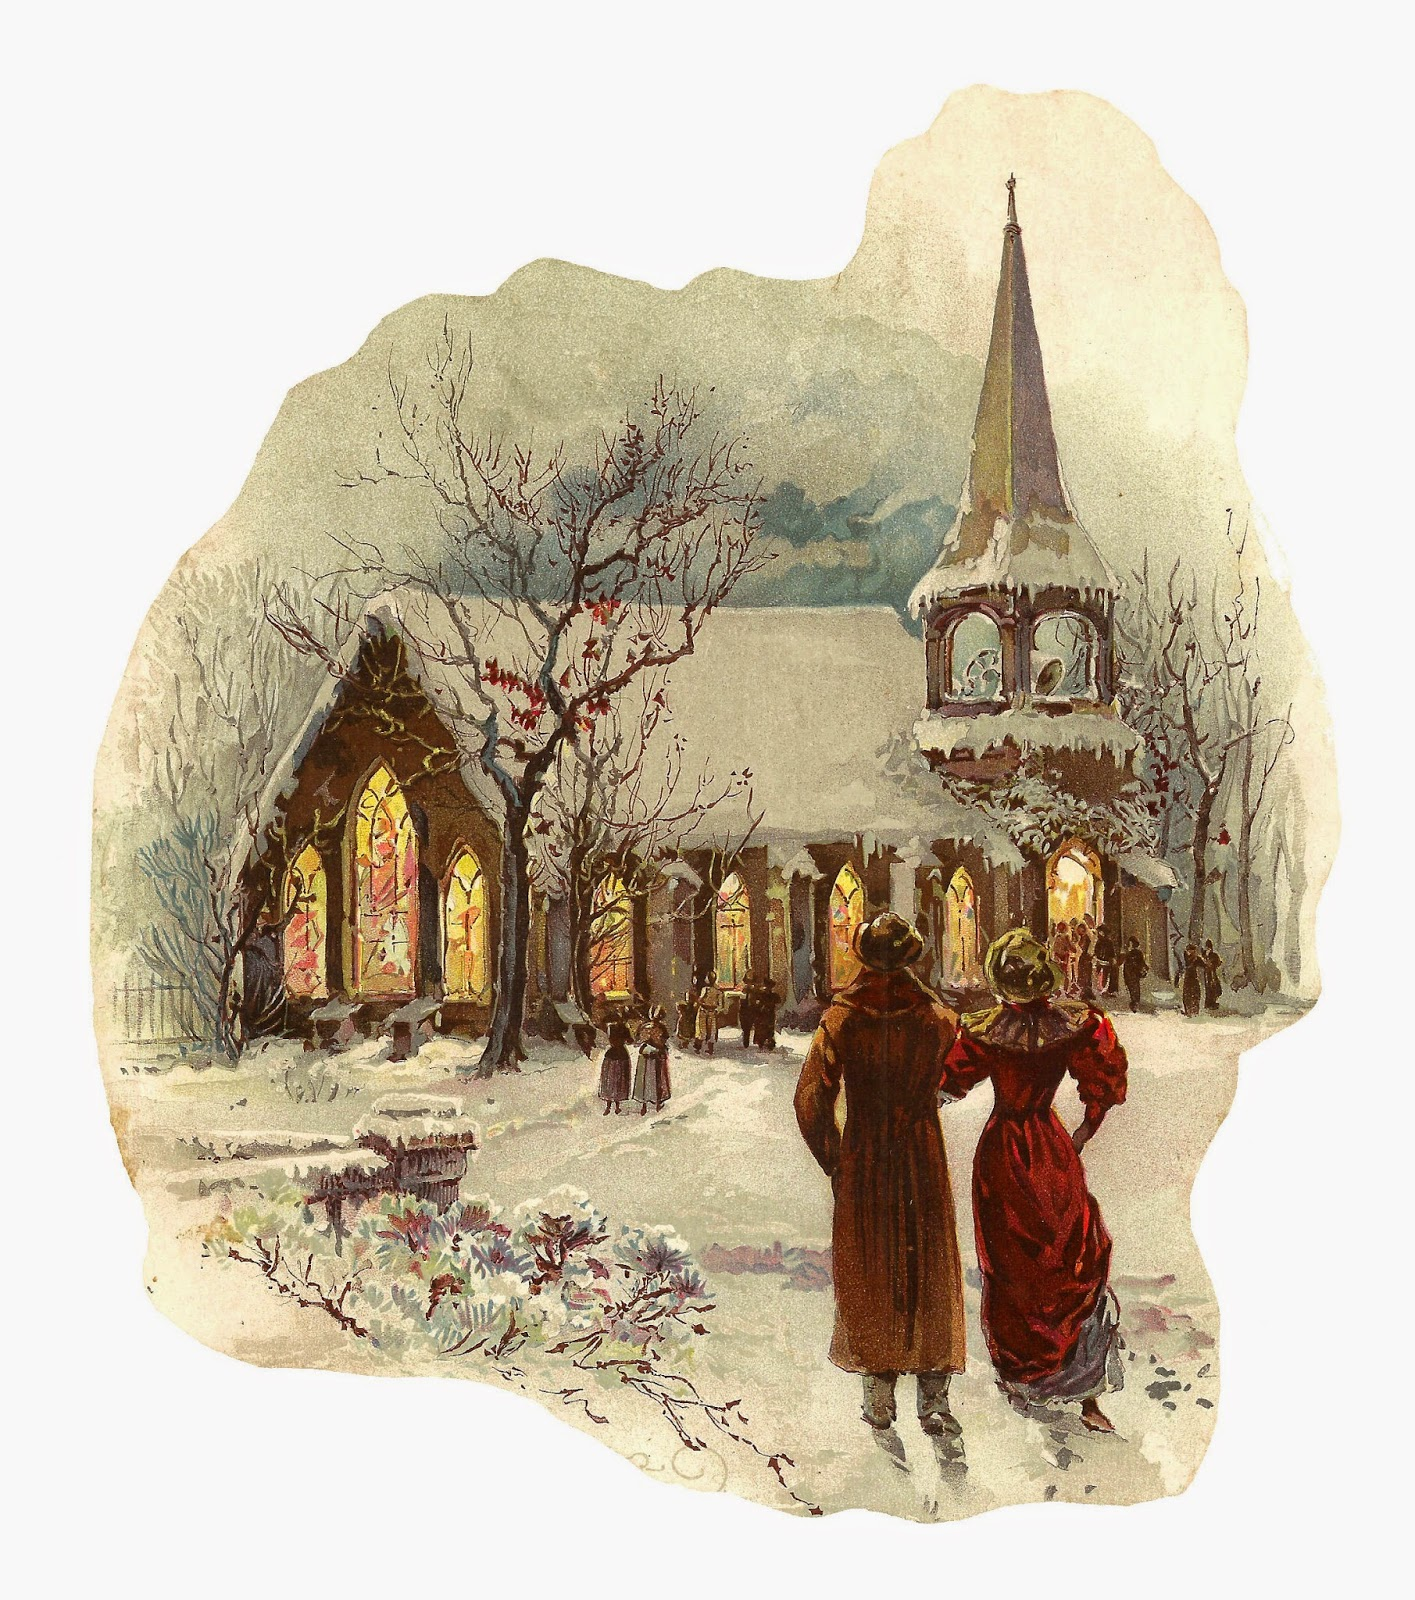 http://3.bp.blogspot.com/-16xiQwgA8A4/VKWuZ3o622I/AAAAAAAAUoE/BWb6CO_shcc/s1600/scrap_church_winter_couple_gm.jpg